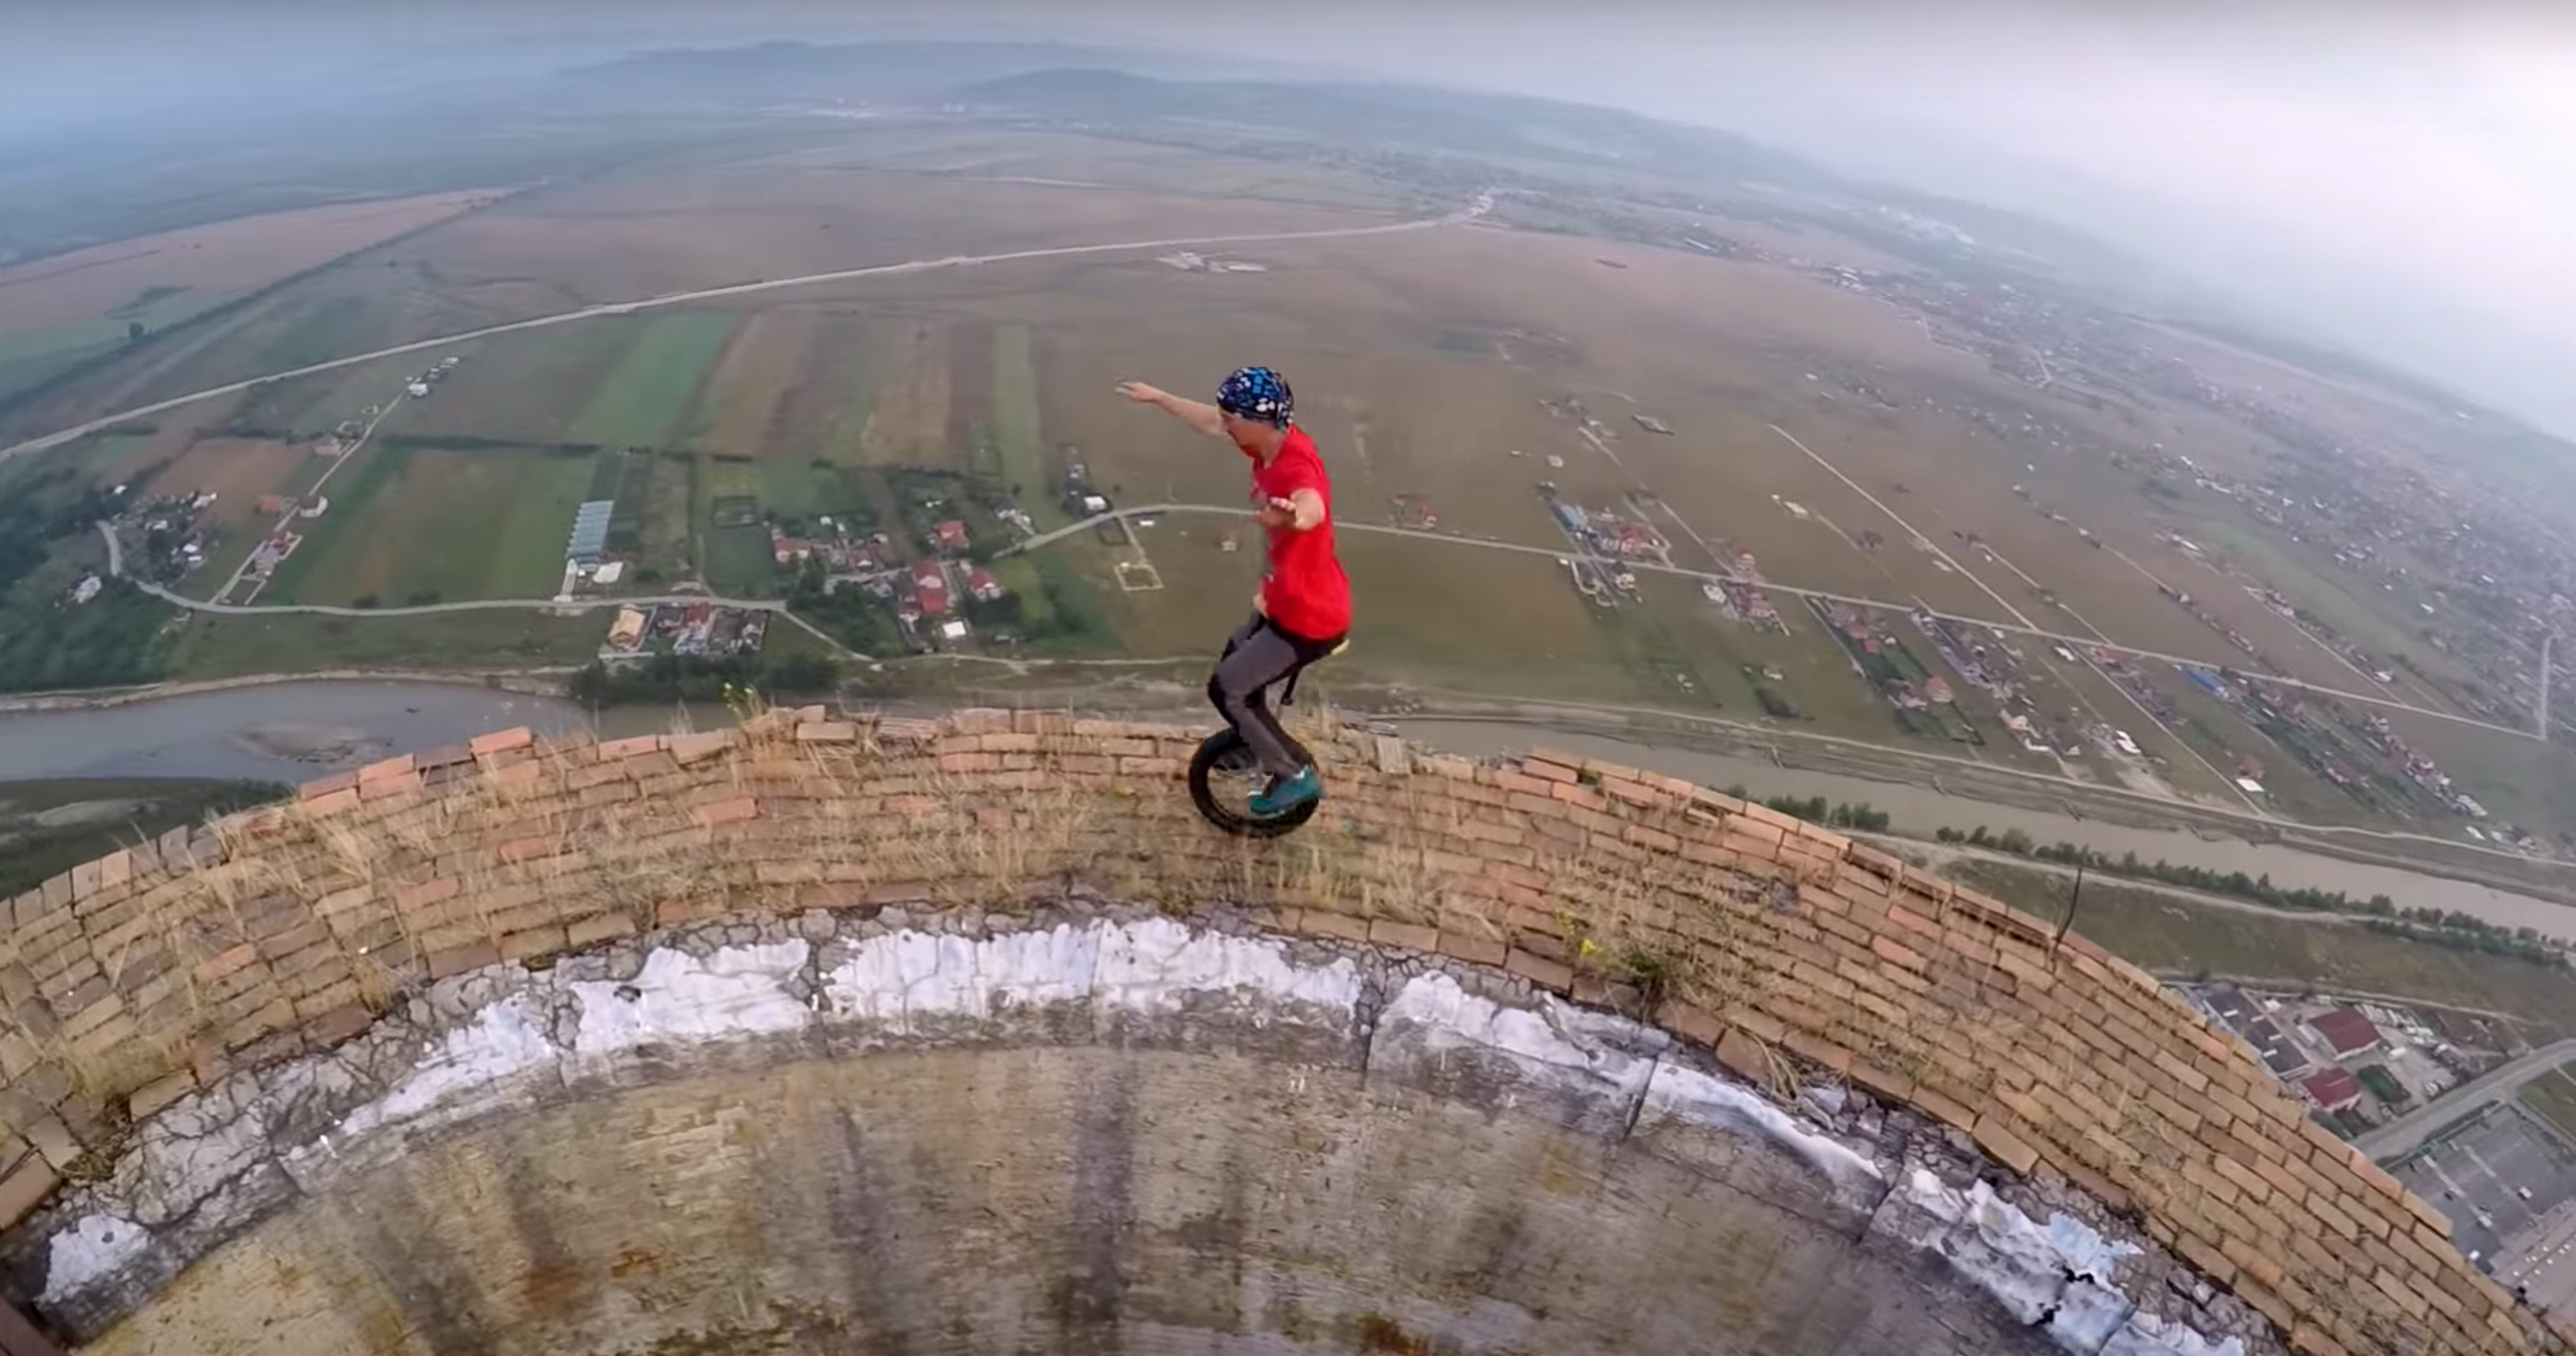 A Really Scary Spot For A Unicycle Ride